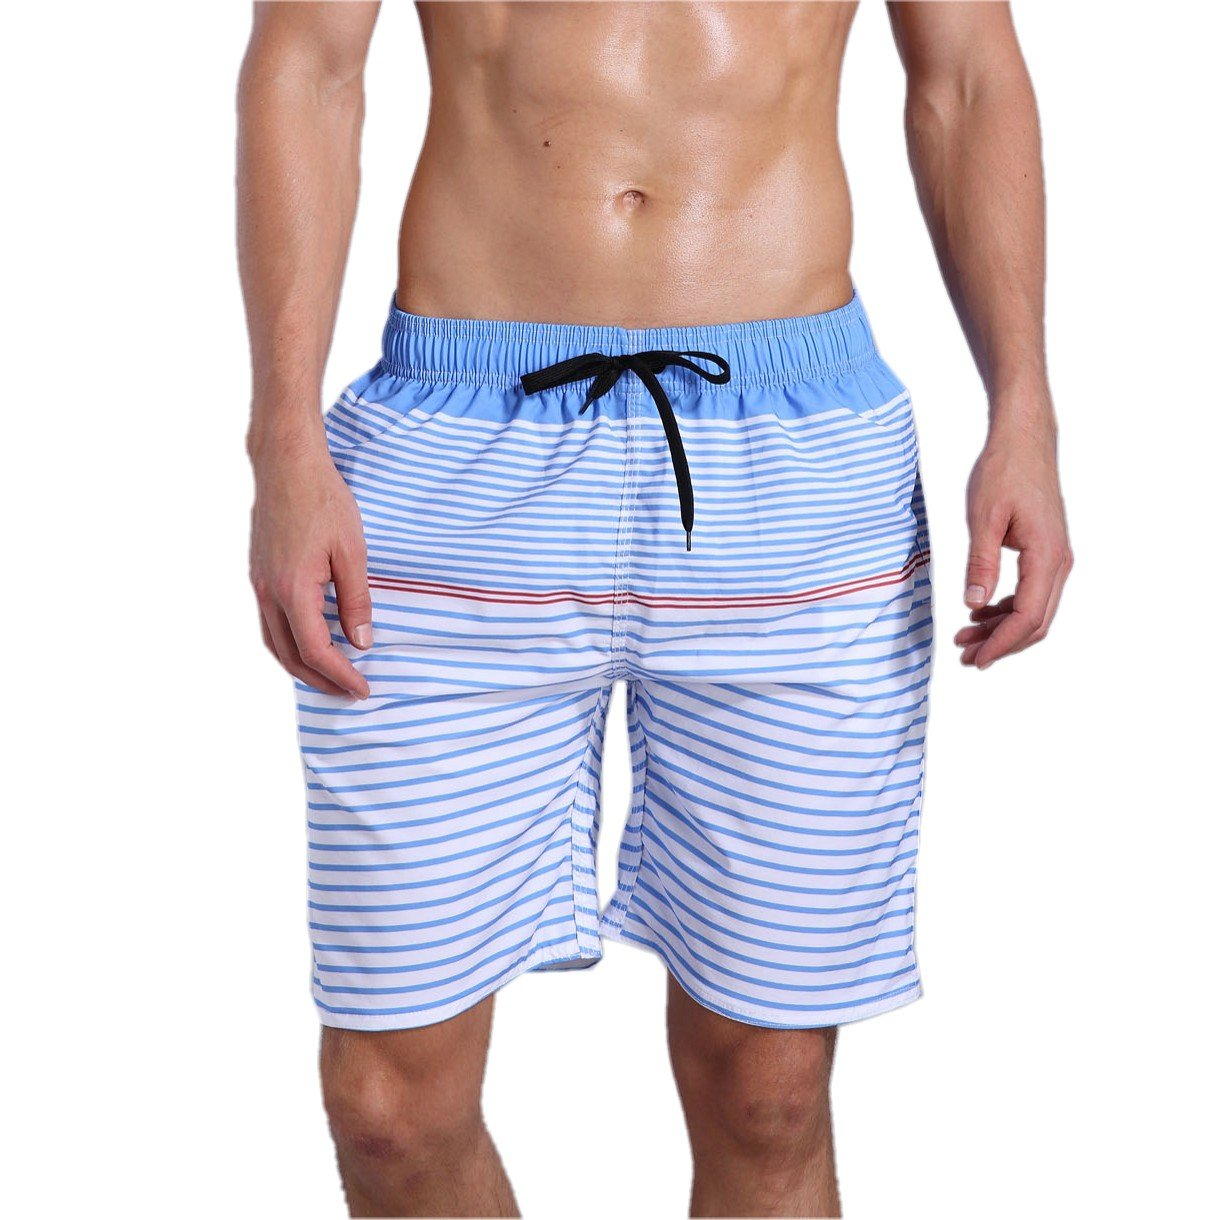 ORANSSI Men's Quick Dry Swim Trunks Bathing Suit Striped Shorts with Pockets,Blue,Medium / 34-36 Inches